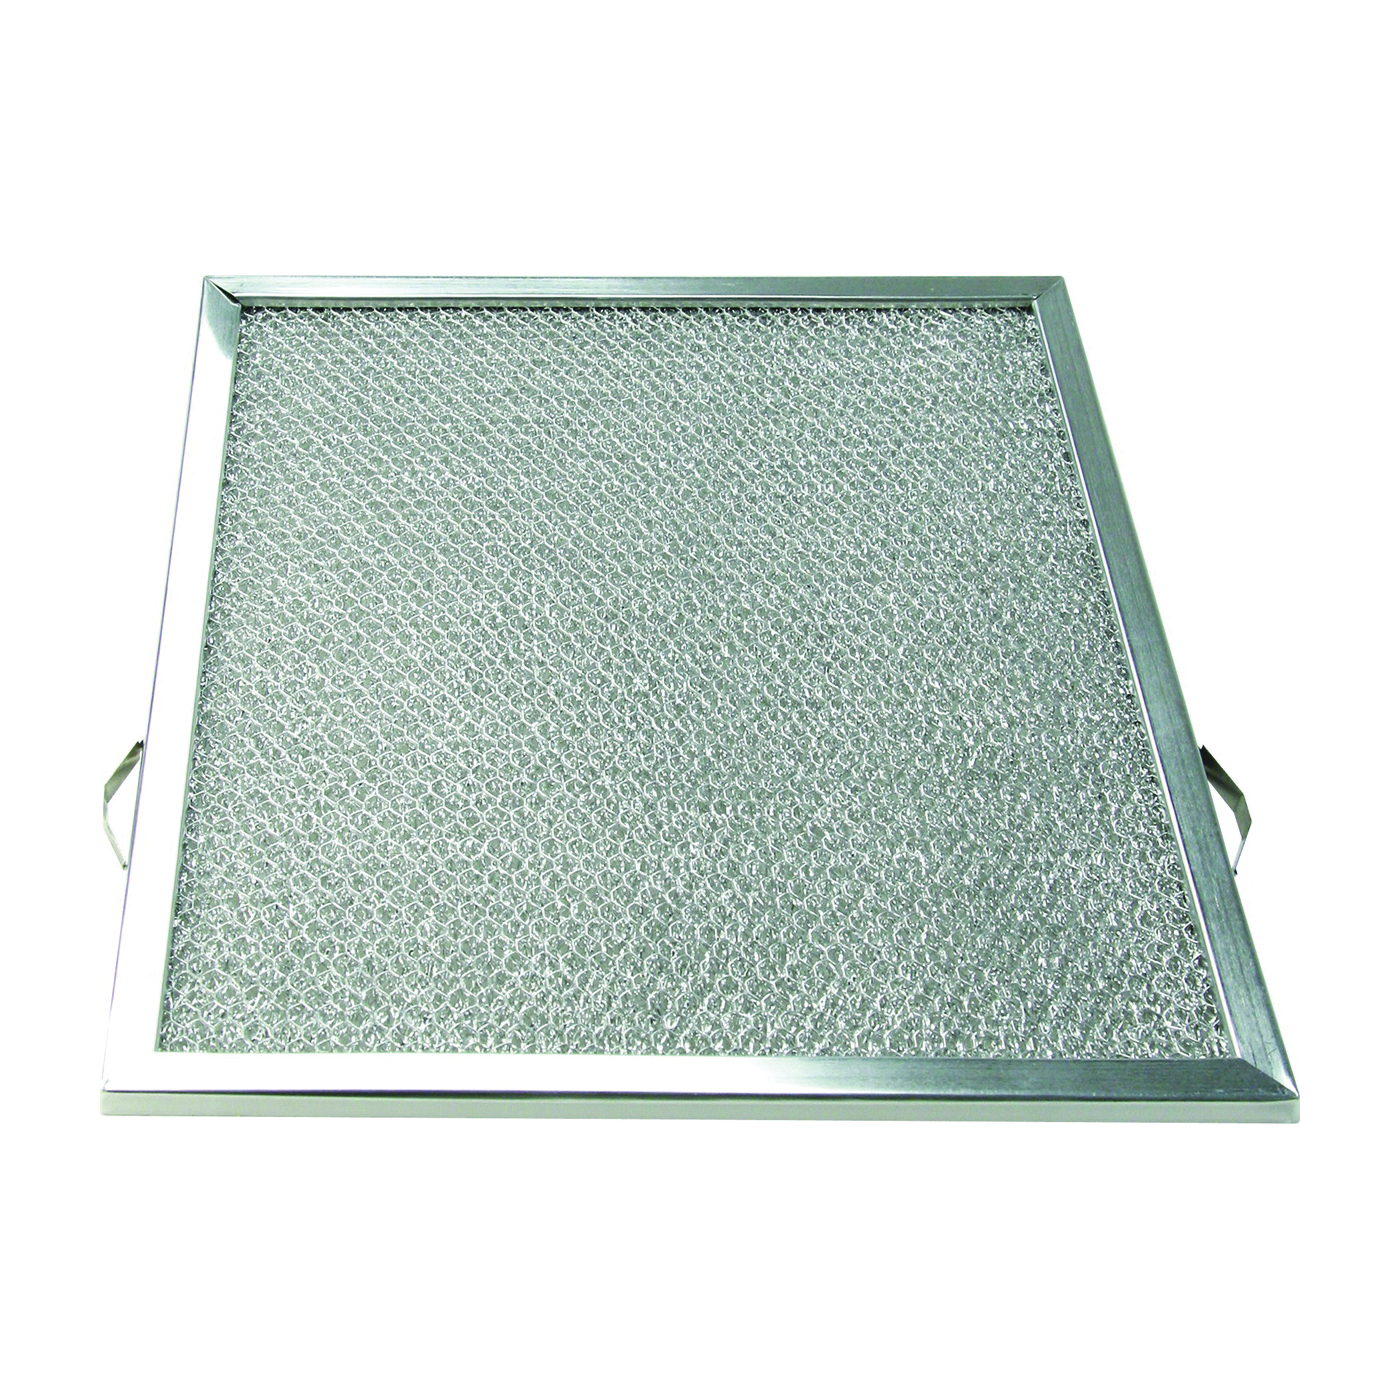 Picture of Air King GF-06S Grease Filter, Aluminum, For: QZ2 Series Range Hoods